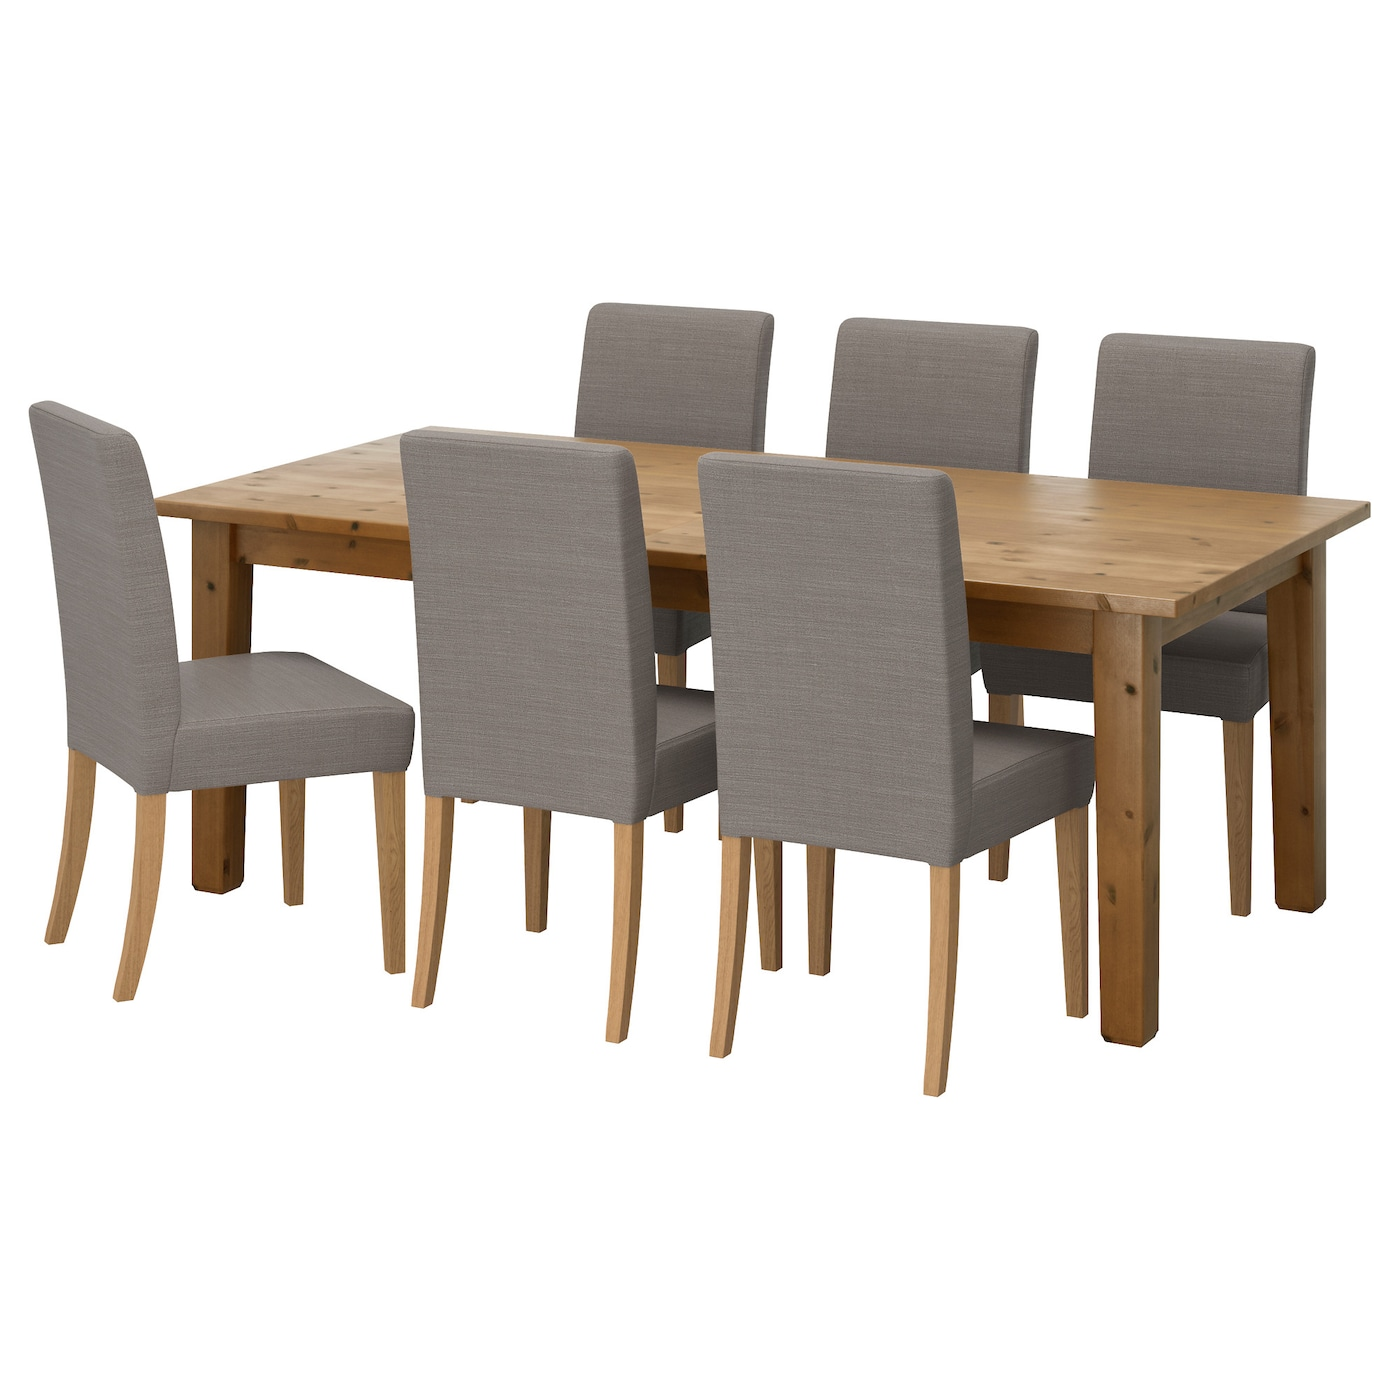 Ikea Henriksdal StornÄs Table And 6 Chairs